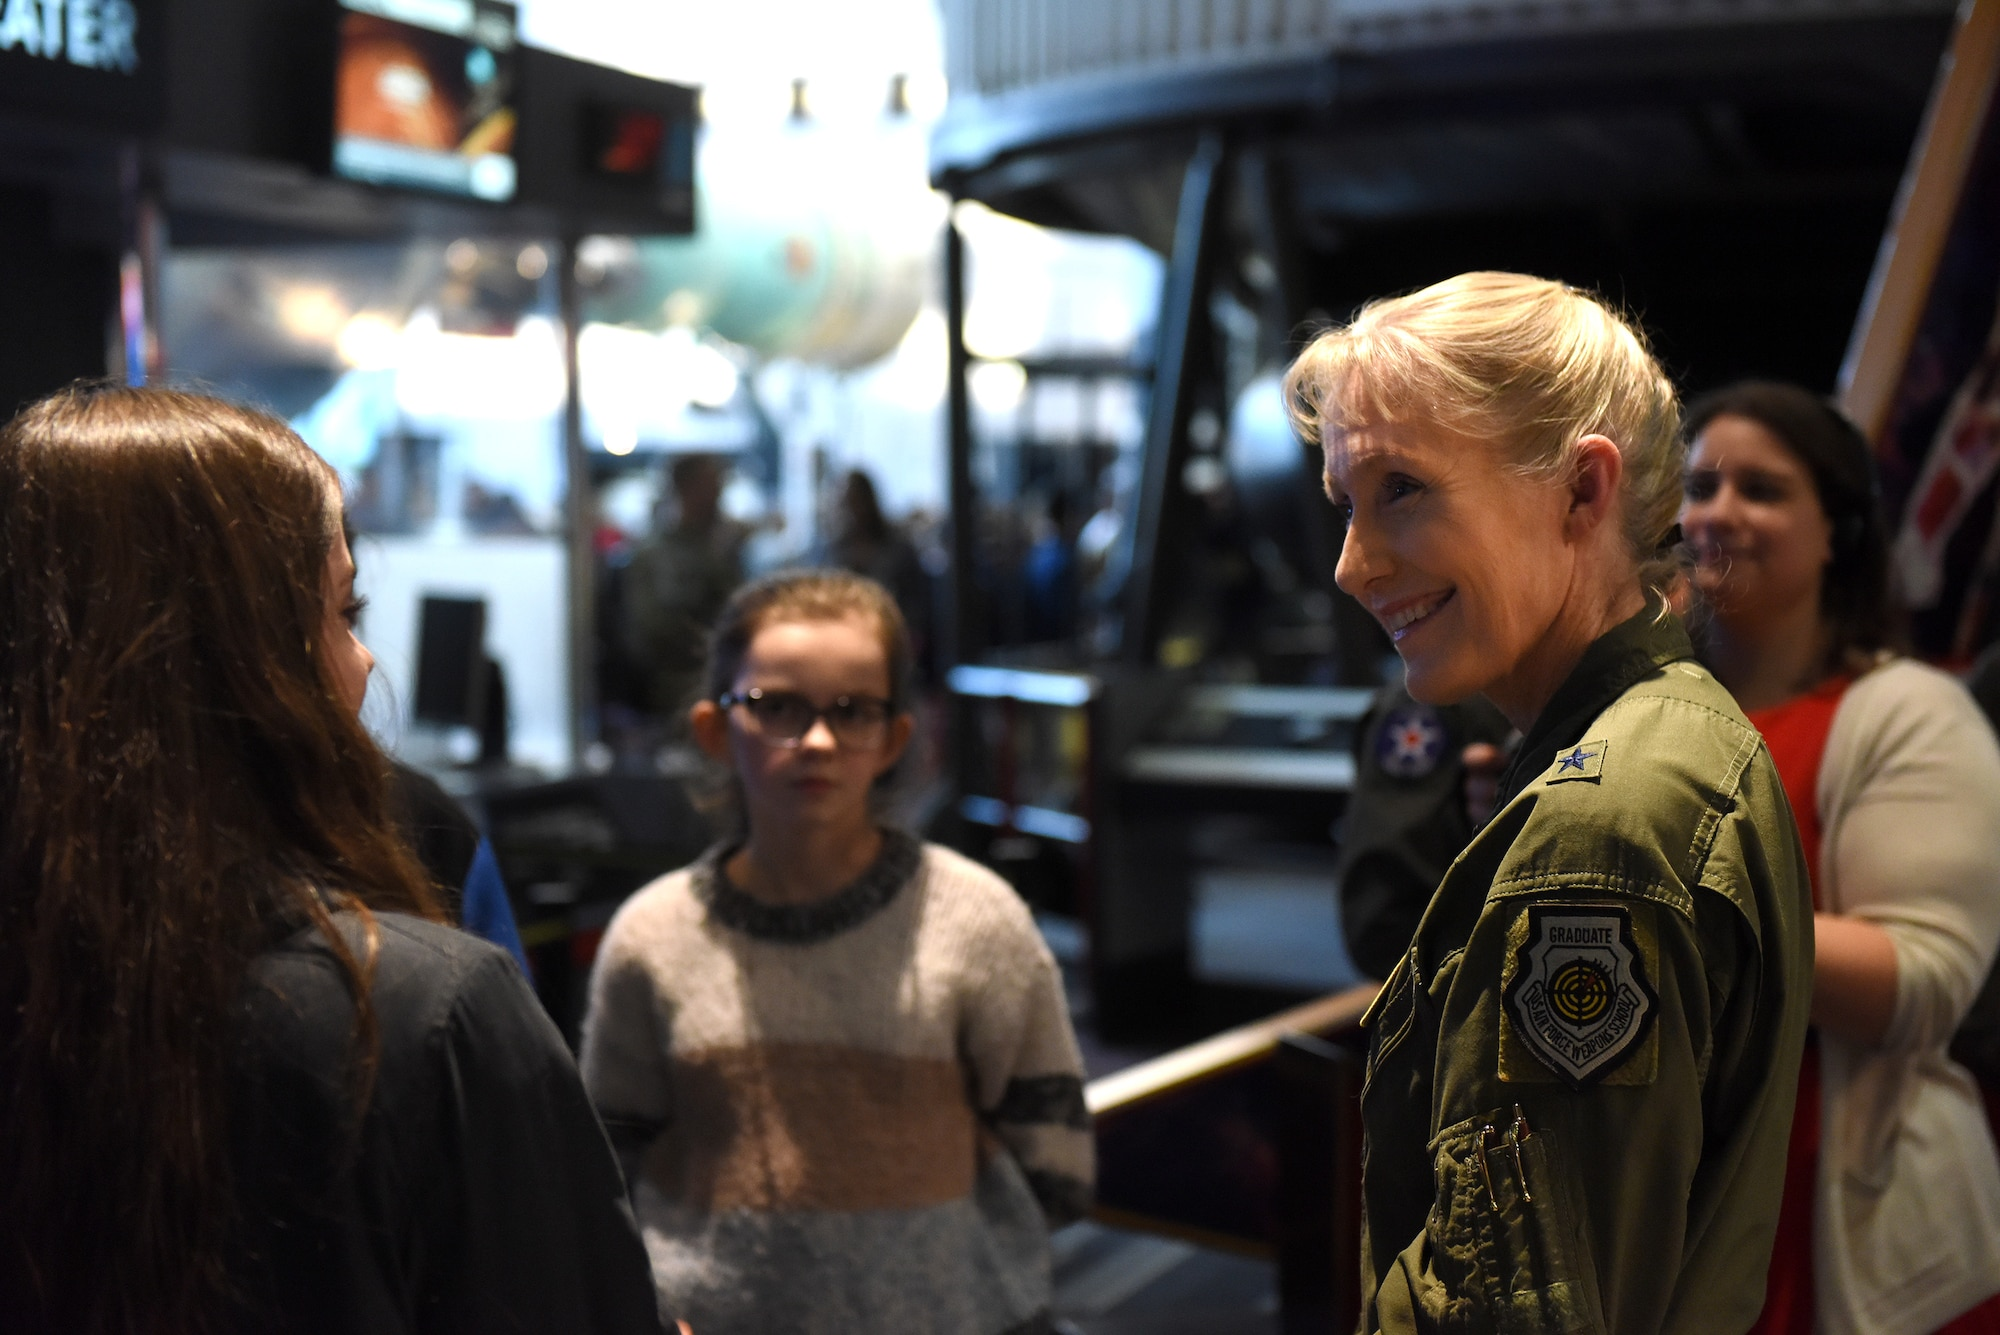 """Brig. Gen. Jeannie Leavitt, Air Force Recruiting Services commander, tours the STEM demonstration prior to a screening of the movie """"Captain Marvel"""" in Washington, D.C., March 7, 2019. The demonstration was held to inspire children to serve in the Air Force or STEM-related careers. (U.S. Air Force photo by Staff Sgt. Rusty Frank)"""